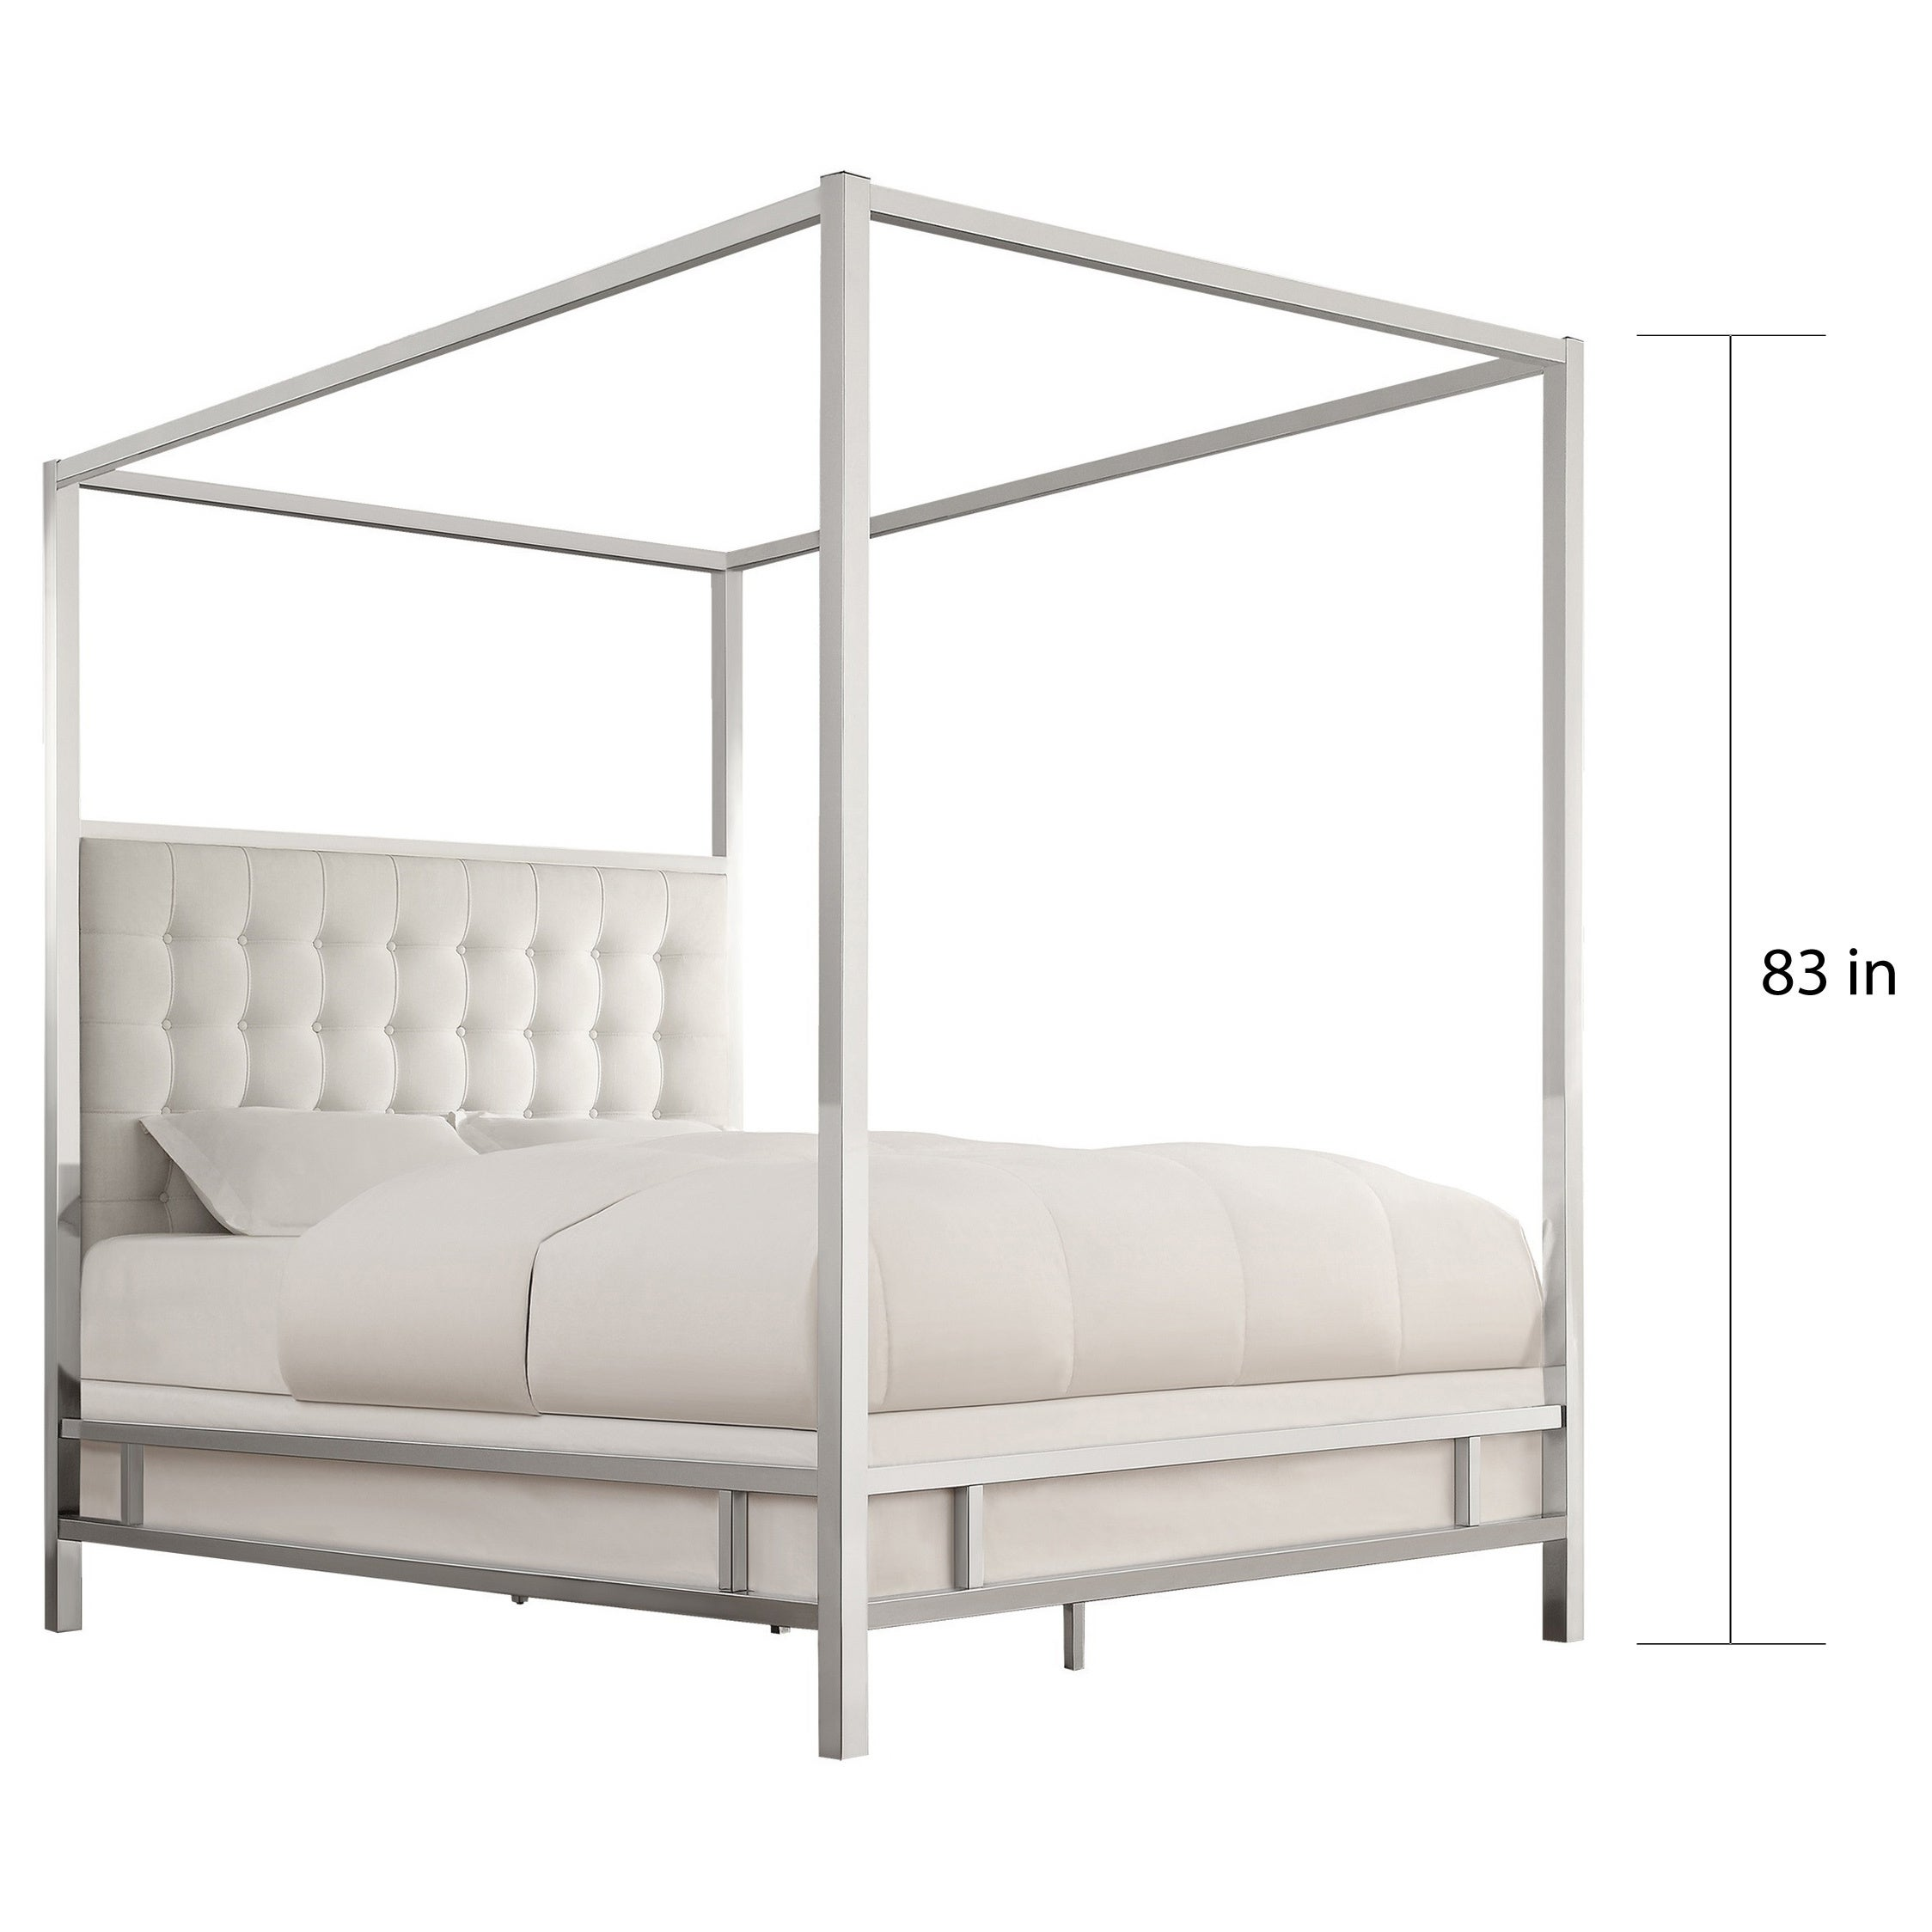 1c57b3a448bd Shop Solivita King-size Canopy Chrome Metal Poster Bed by iNSPIRE Q Bold -  On Sale - Free Shipping Today - Overstock - 9378478